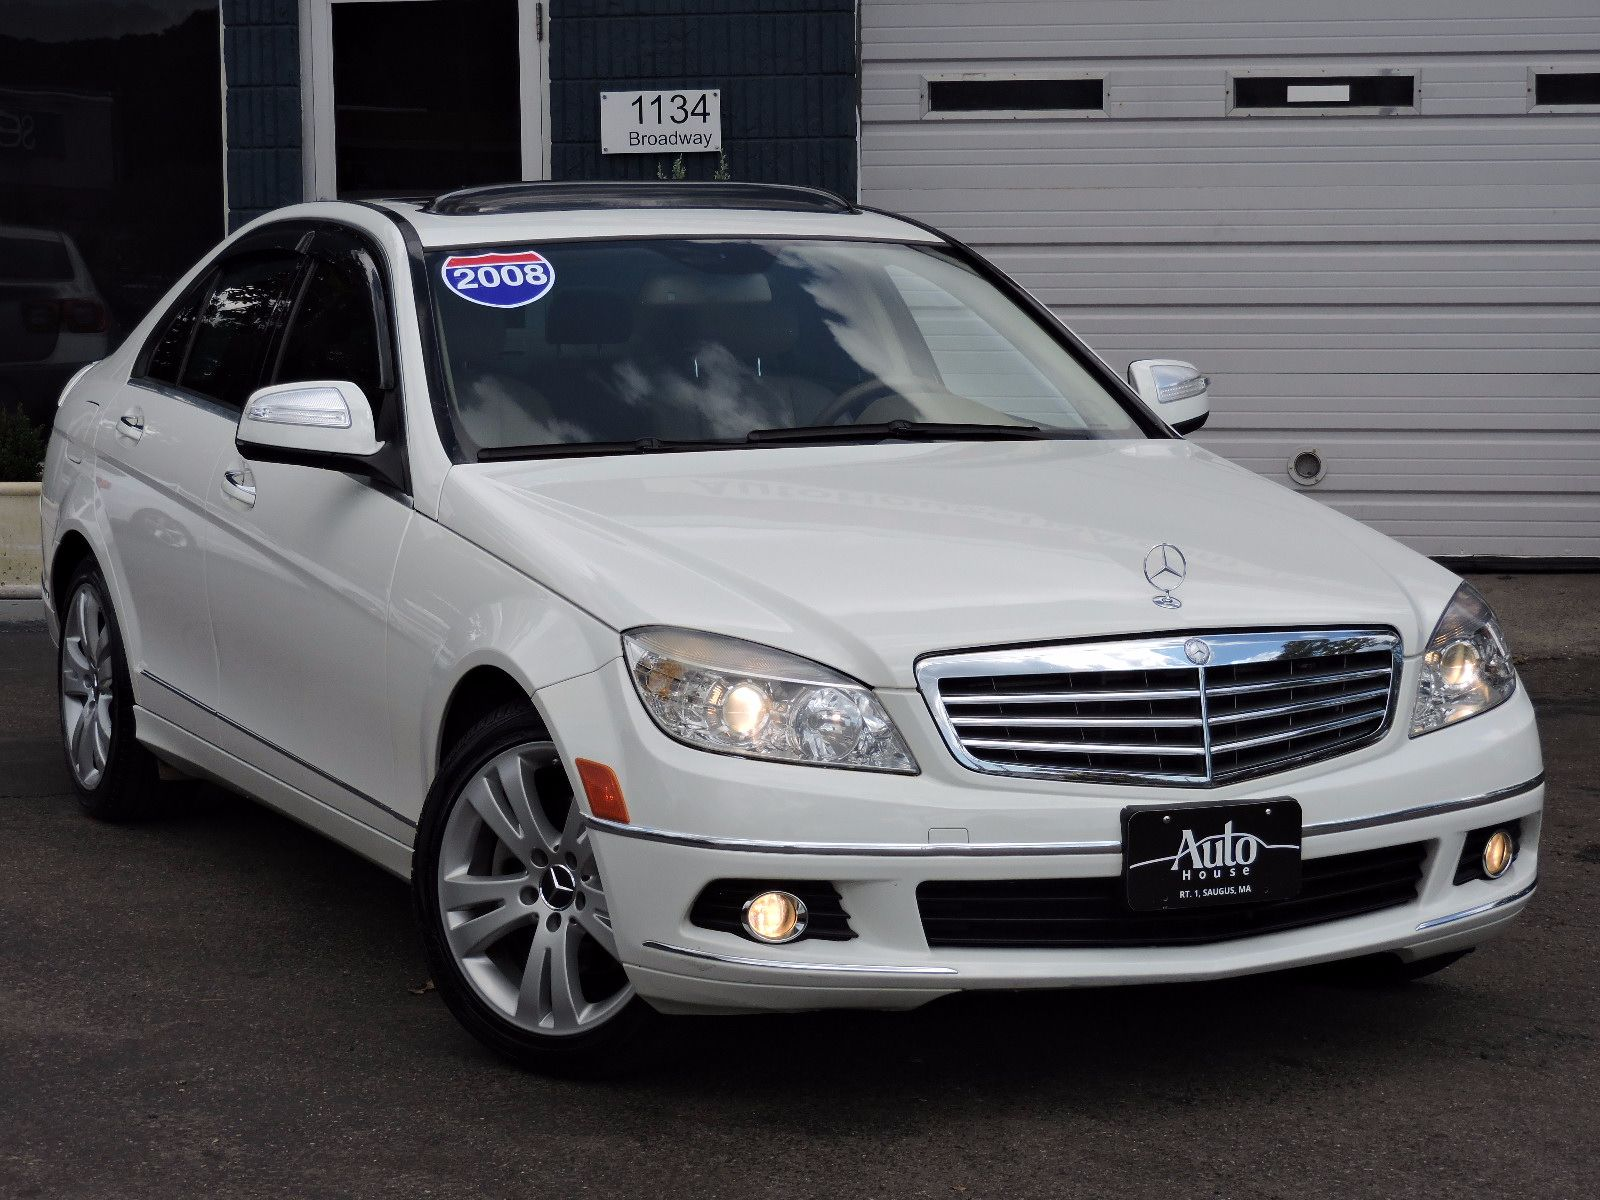 Used 2008 mercedes benz c300 3 0l luxury at auto house usa for Mercedes benz c300 rims